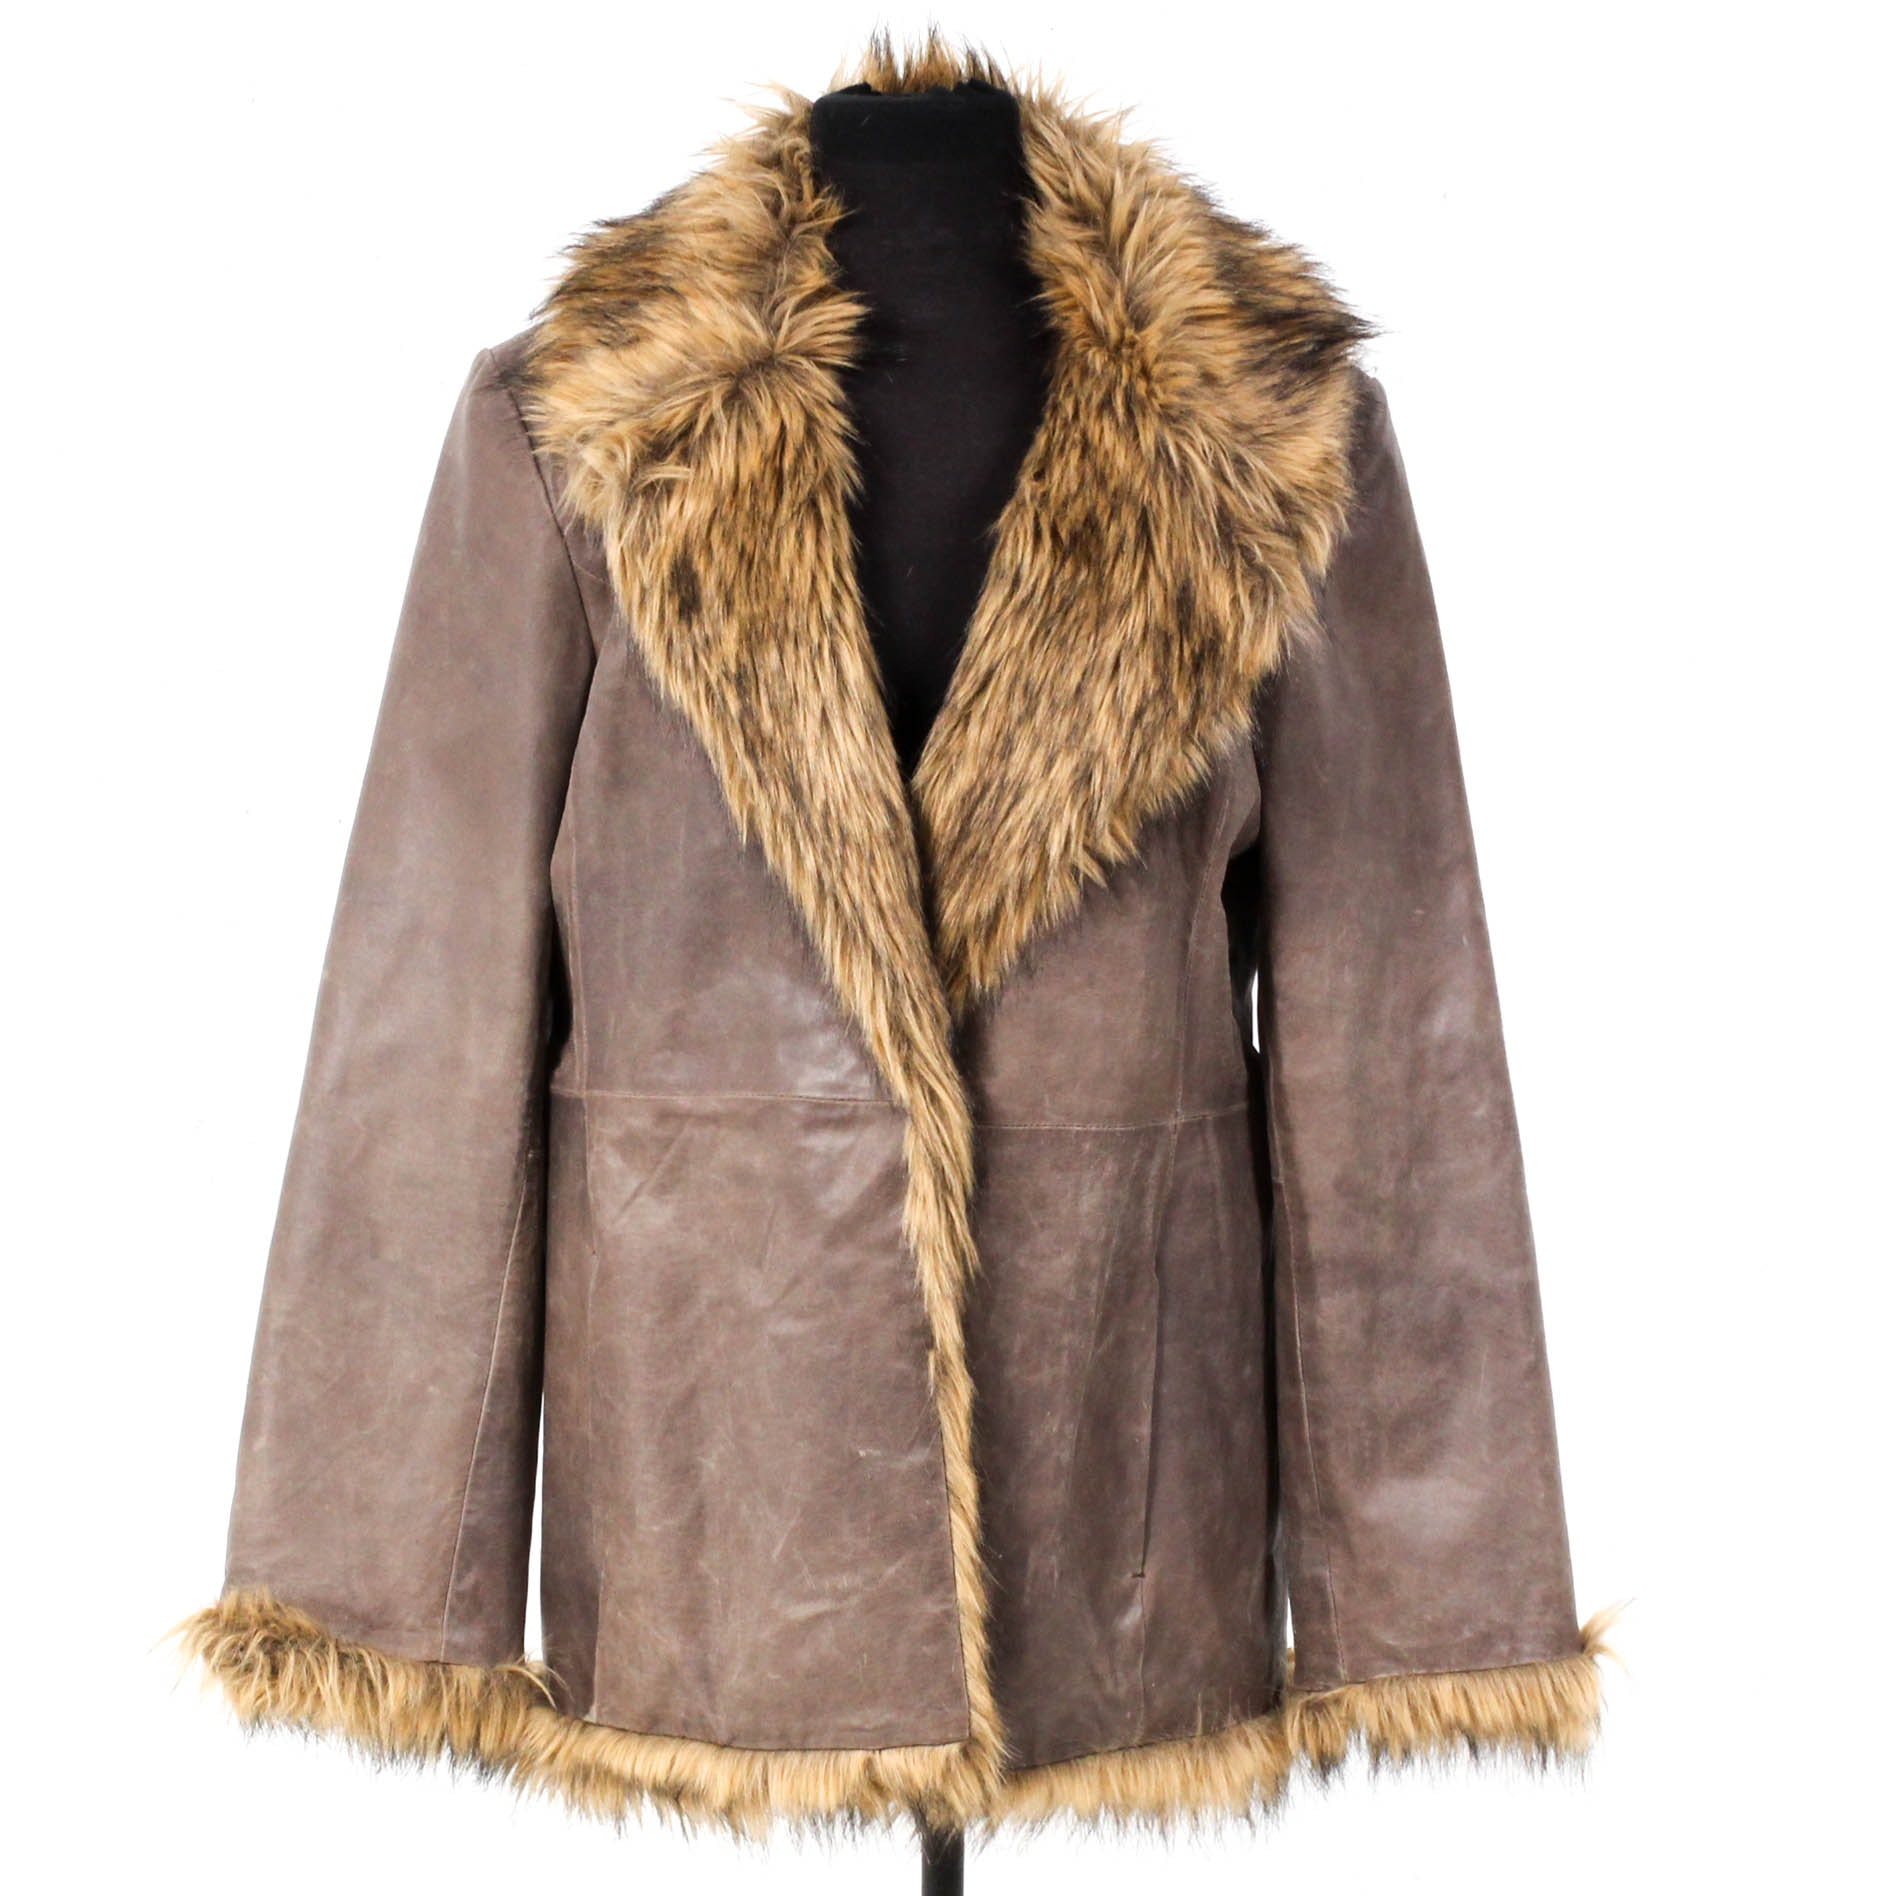 Newport News Easy Style Faux Fur Trimmed Leather Coat